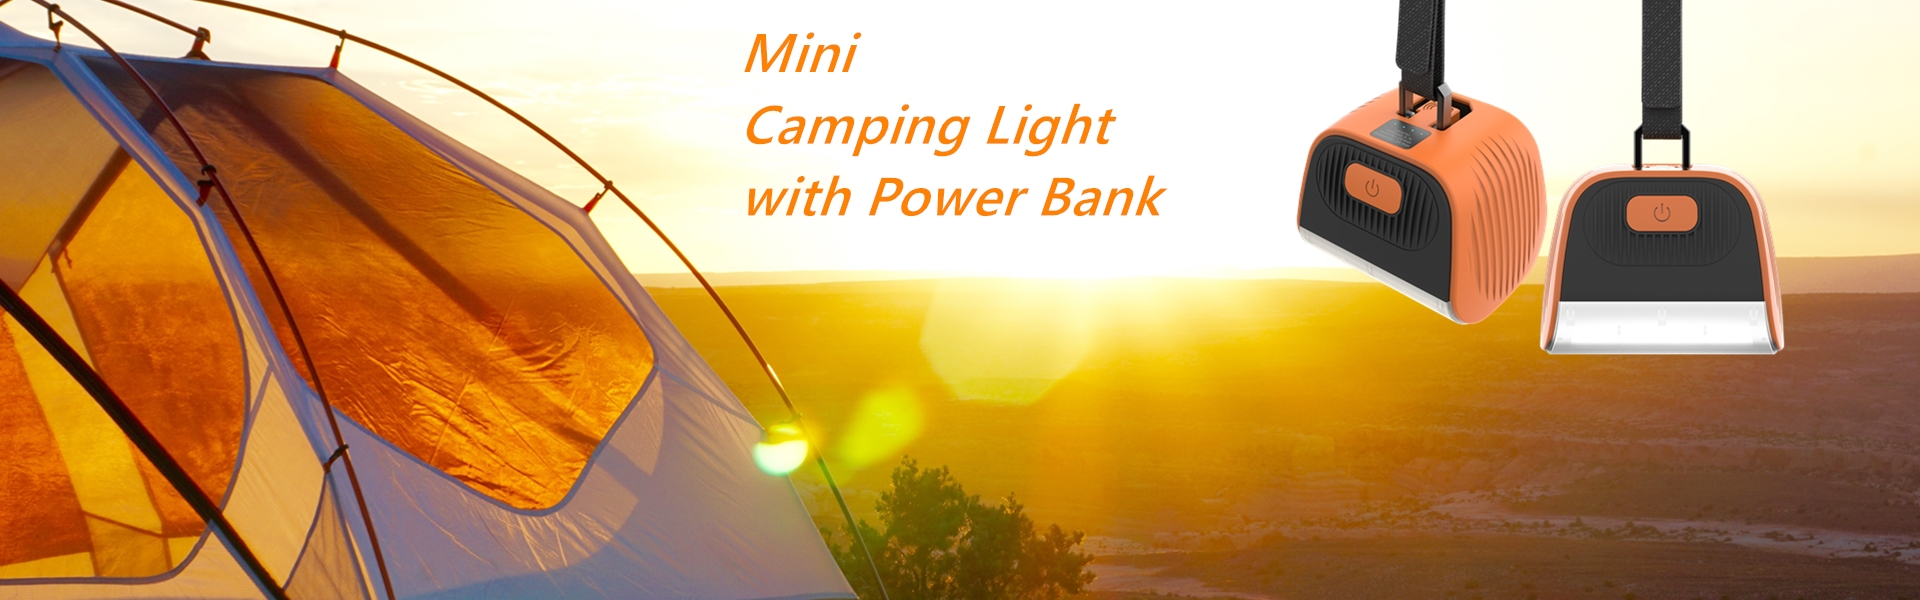 C7 16 LED Rechargeable LED Camping Lantern/ Camping Lights 4000mAh Power Bank